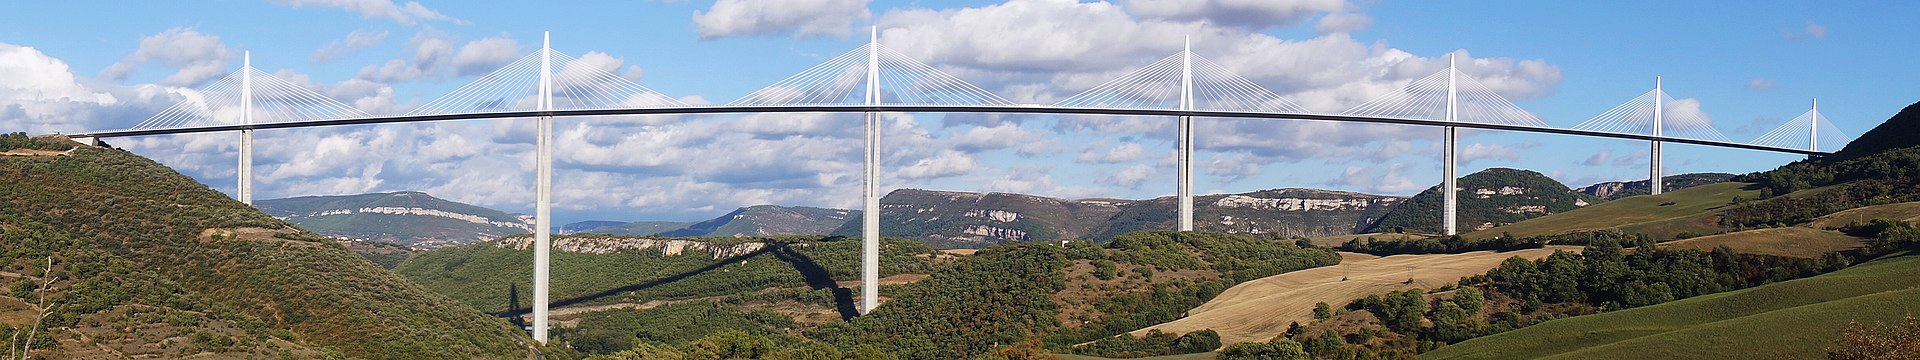 Panorama view of bridge - Millau Viaducta25 Projects by Norman Foster that made him a leader in the Architecture Industry - Millau Viaduct, France